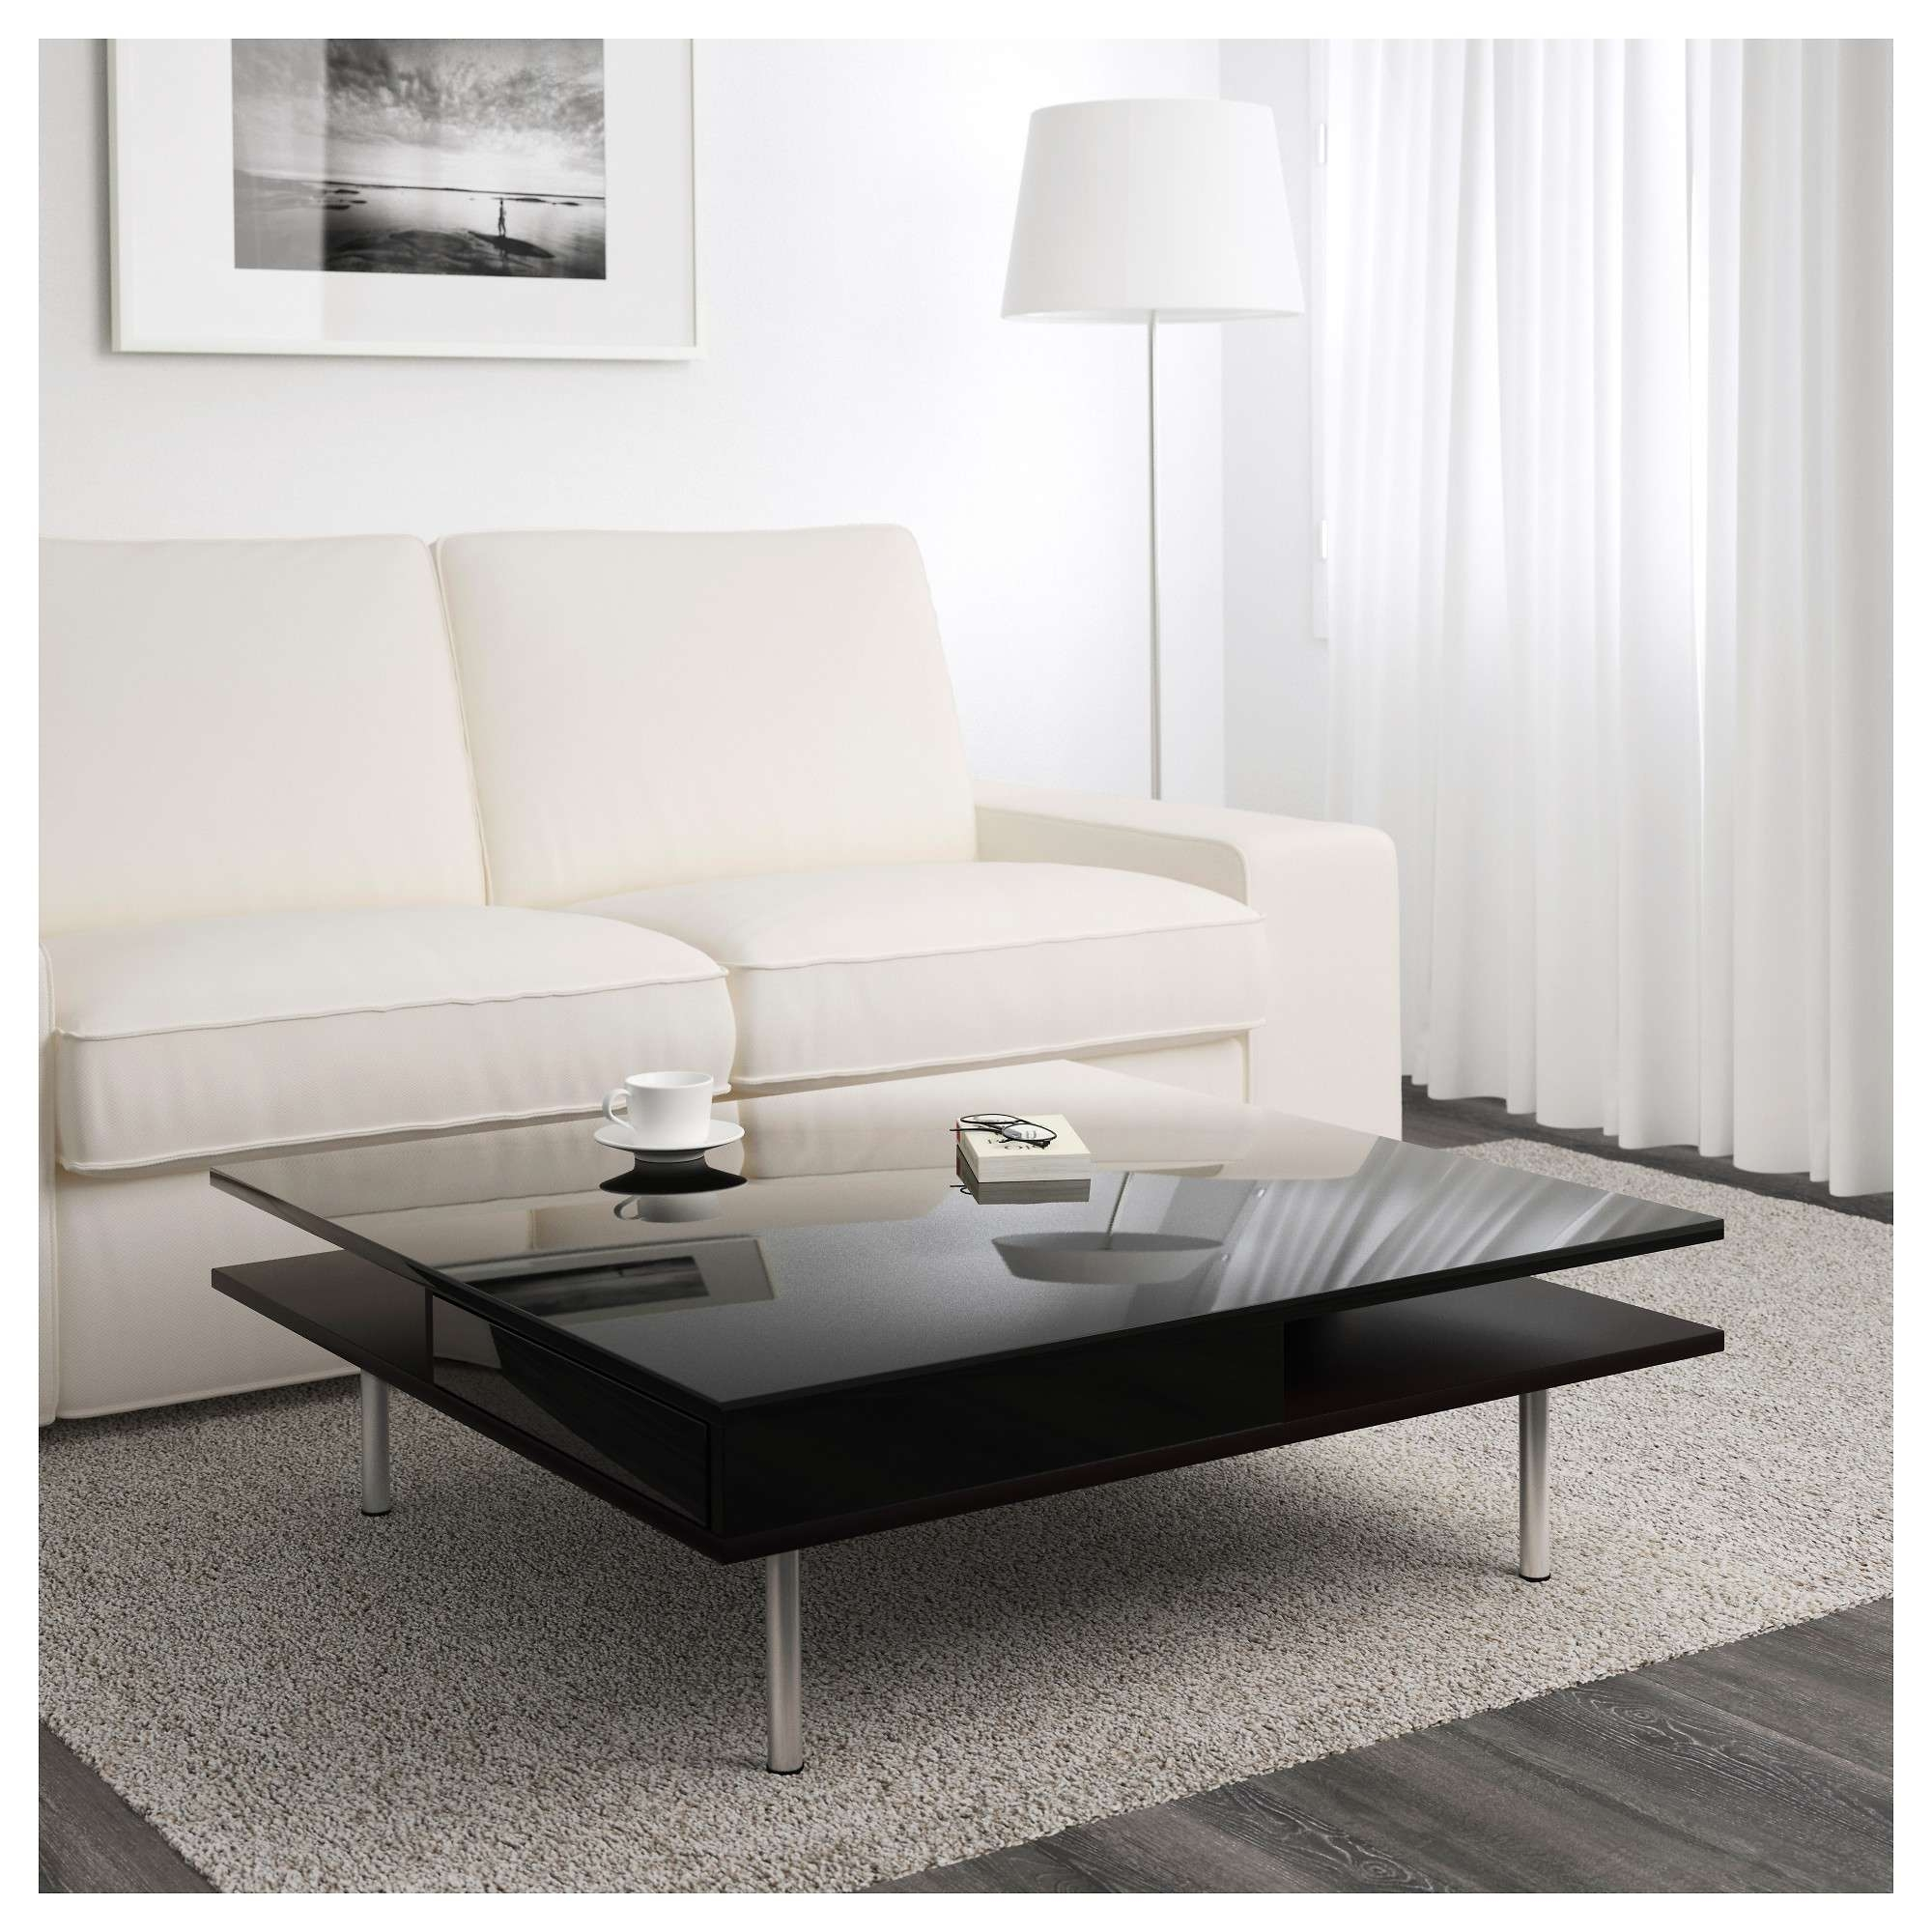 Well Known High Gloss Coffee Tables Within Tofteryd Coffee Table – High Gloss Black – Ikea (View 2 of 20)